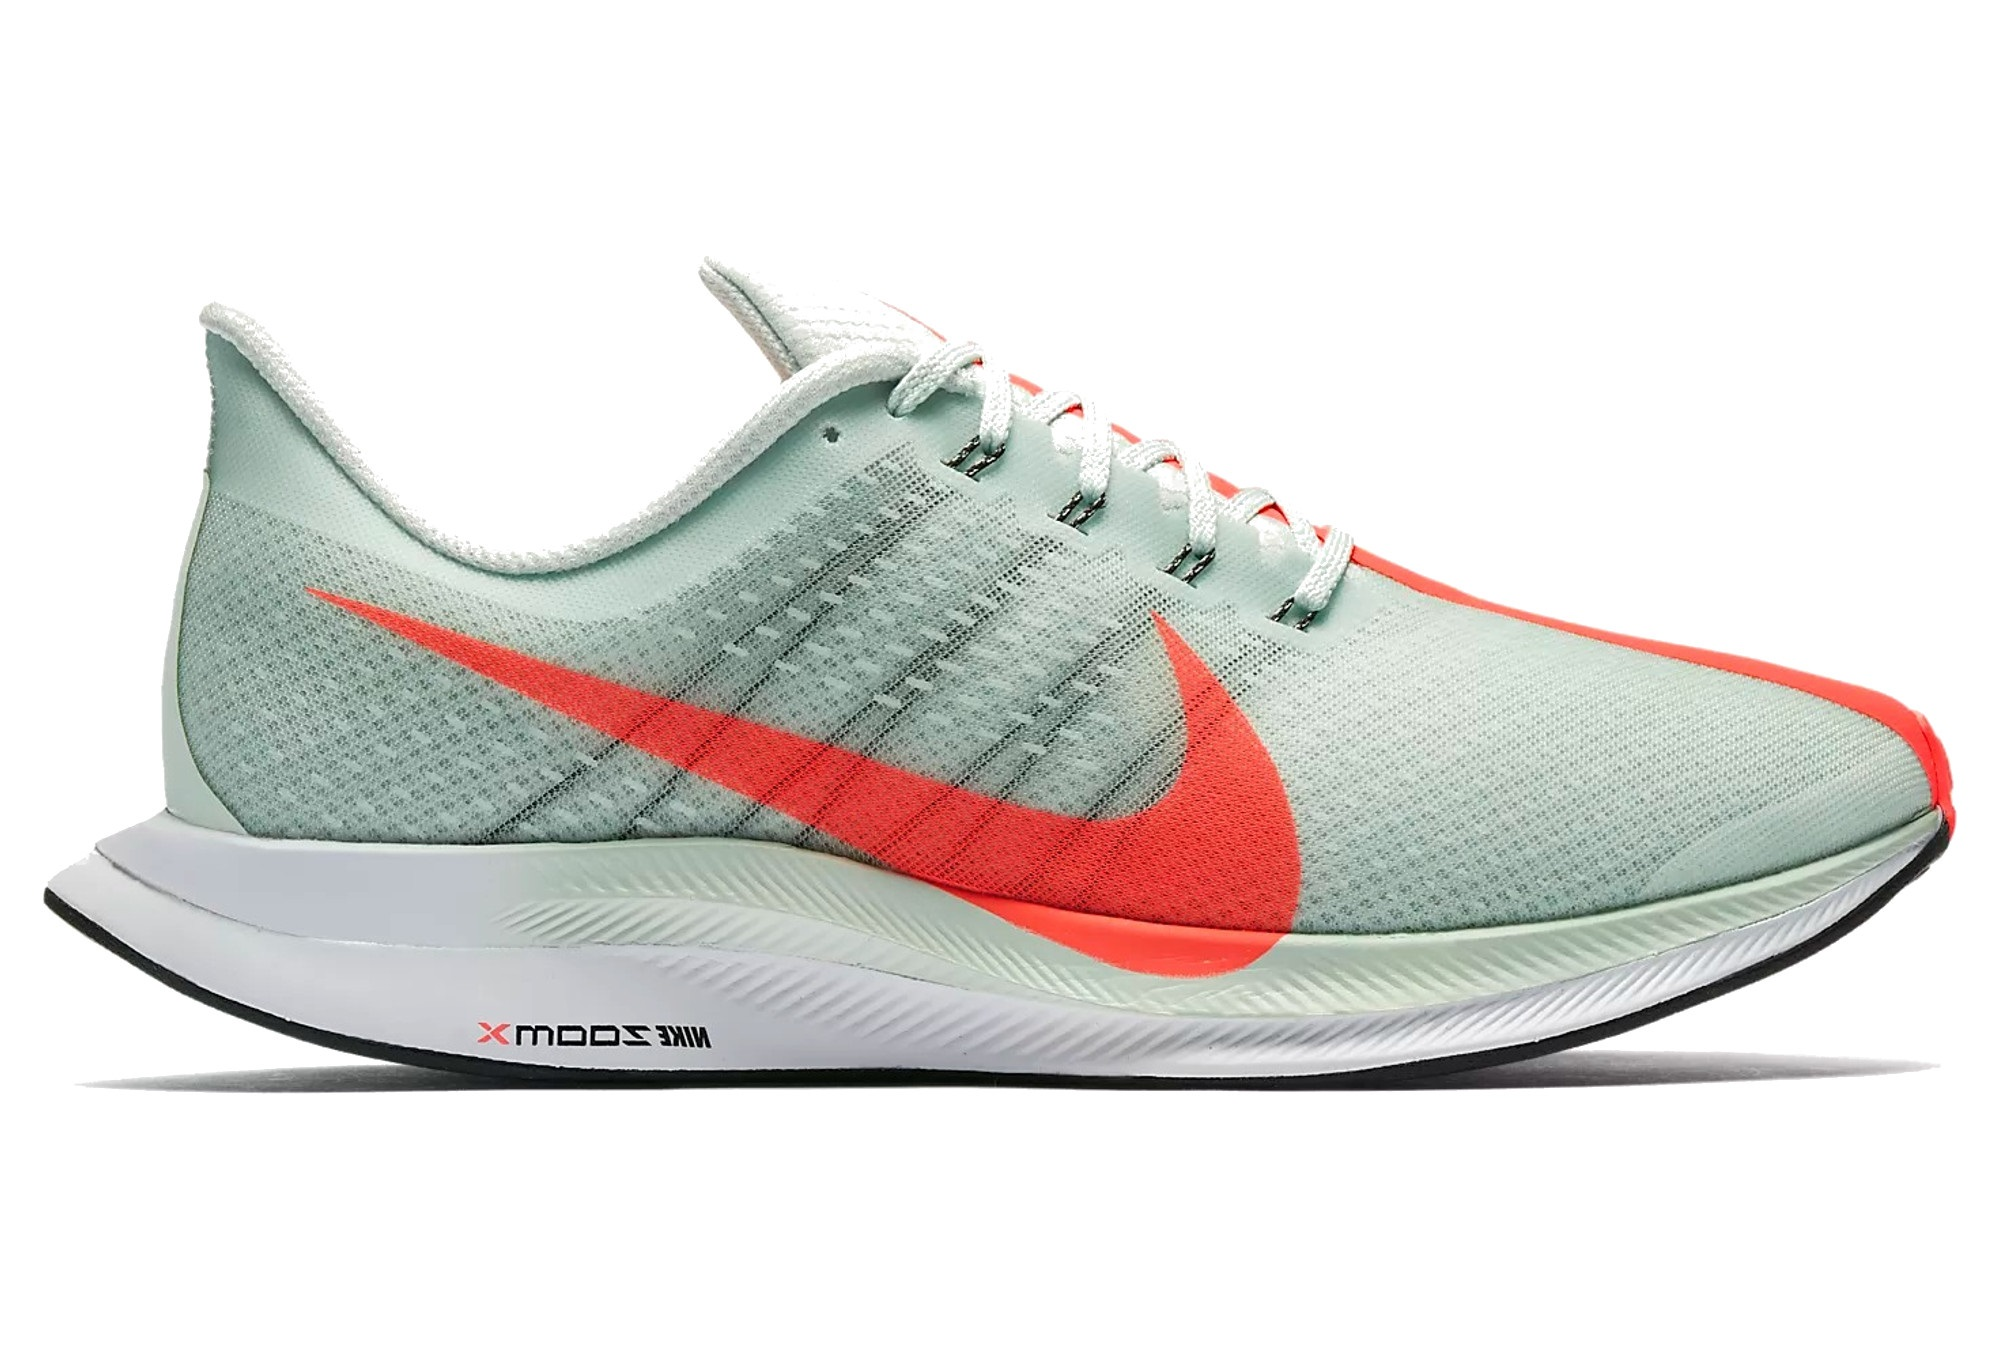 87c5d6be7 ... clearance chaussures de running nike zoom pegasus turbo gris rouge  c0183 f5ea5